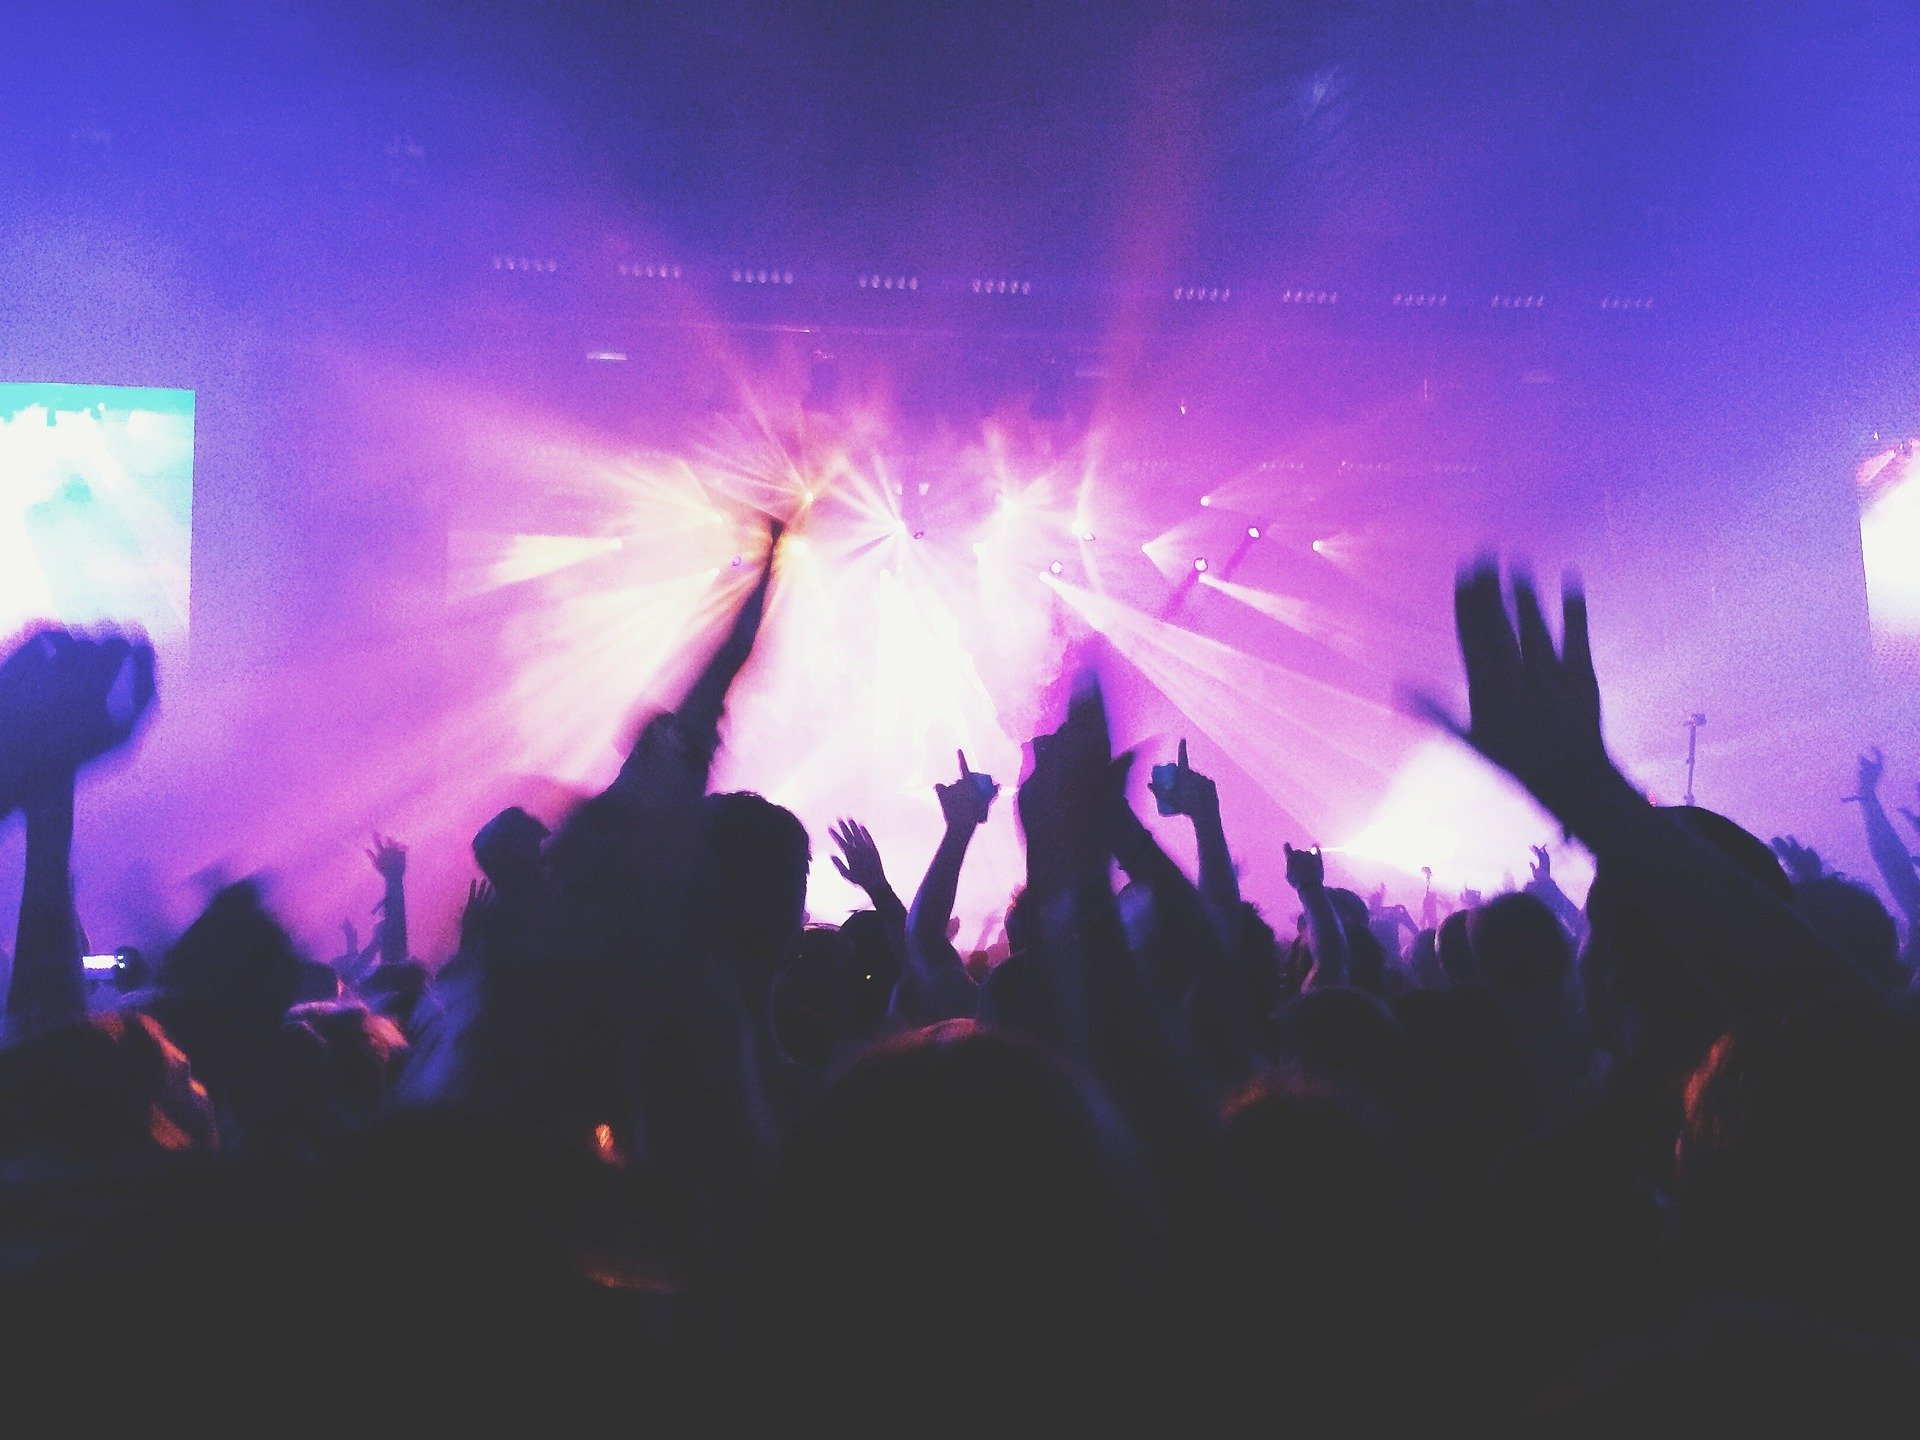 Concert, music, crowd